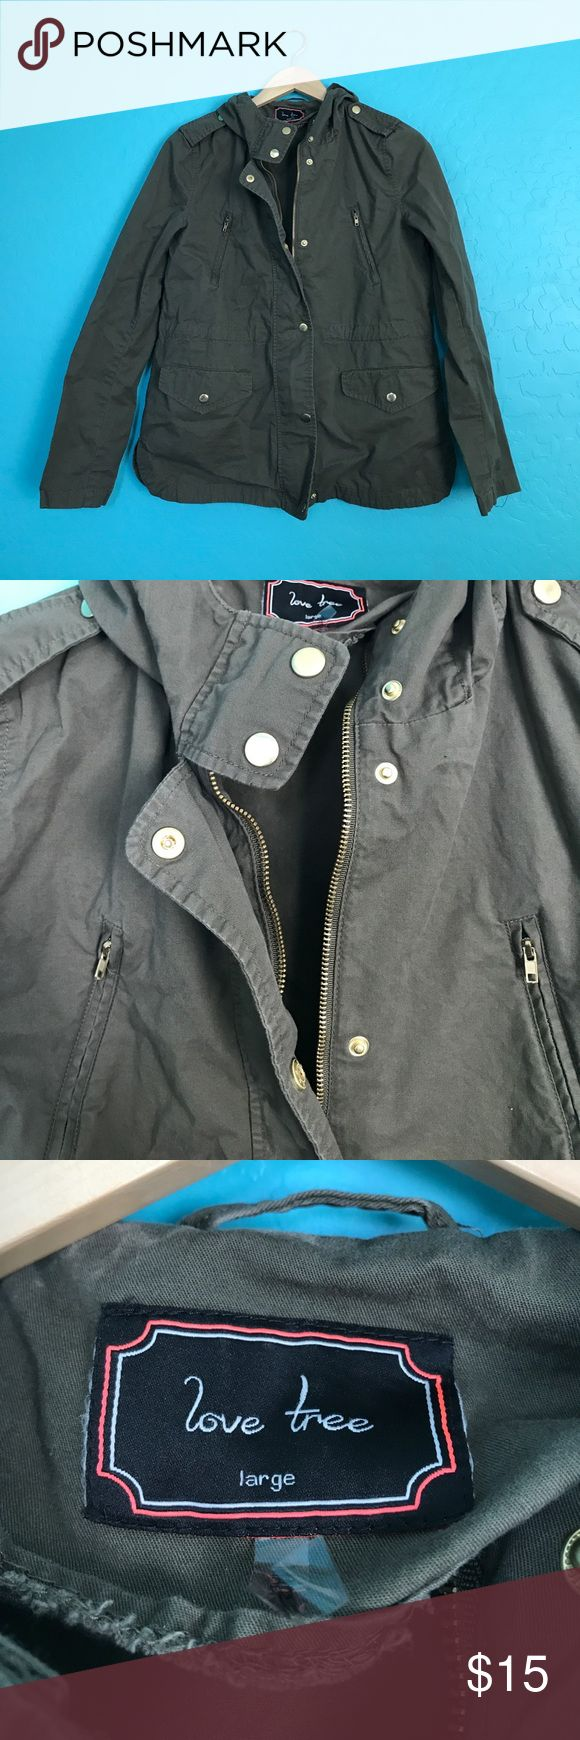 Love Tree army green jacket Army green jacket. Zips up and buttons up. Super cute. Fits pretty large. love tree Jackets & Coats Utility Jackets